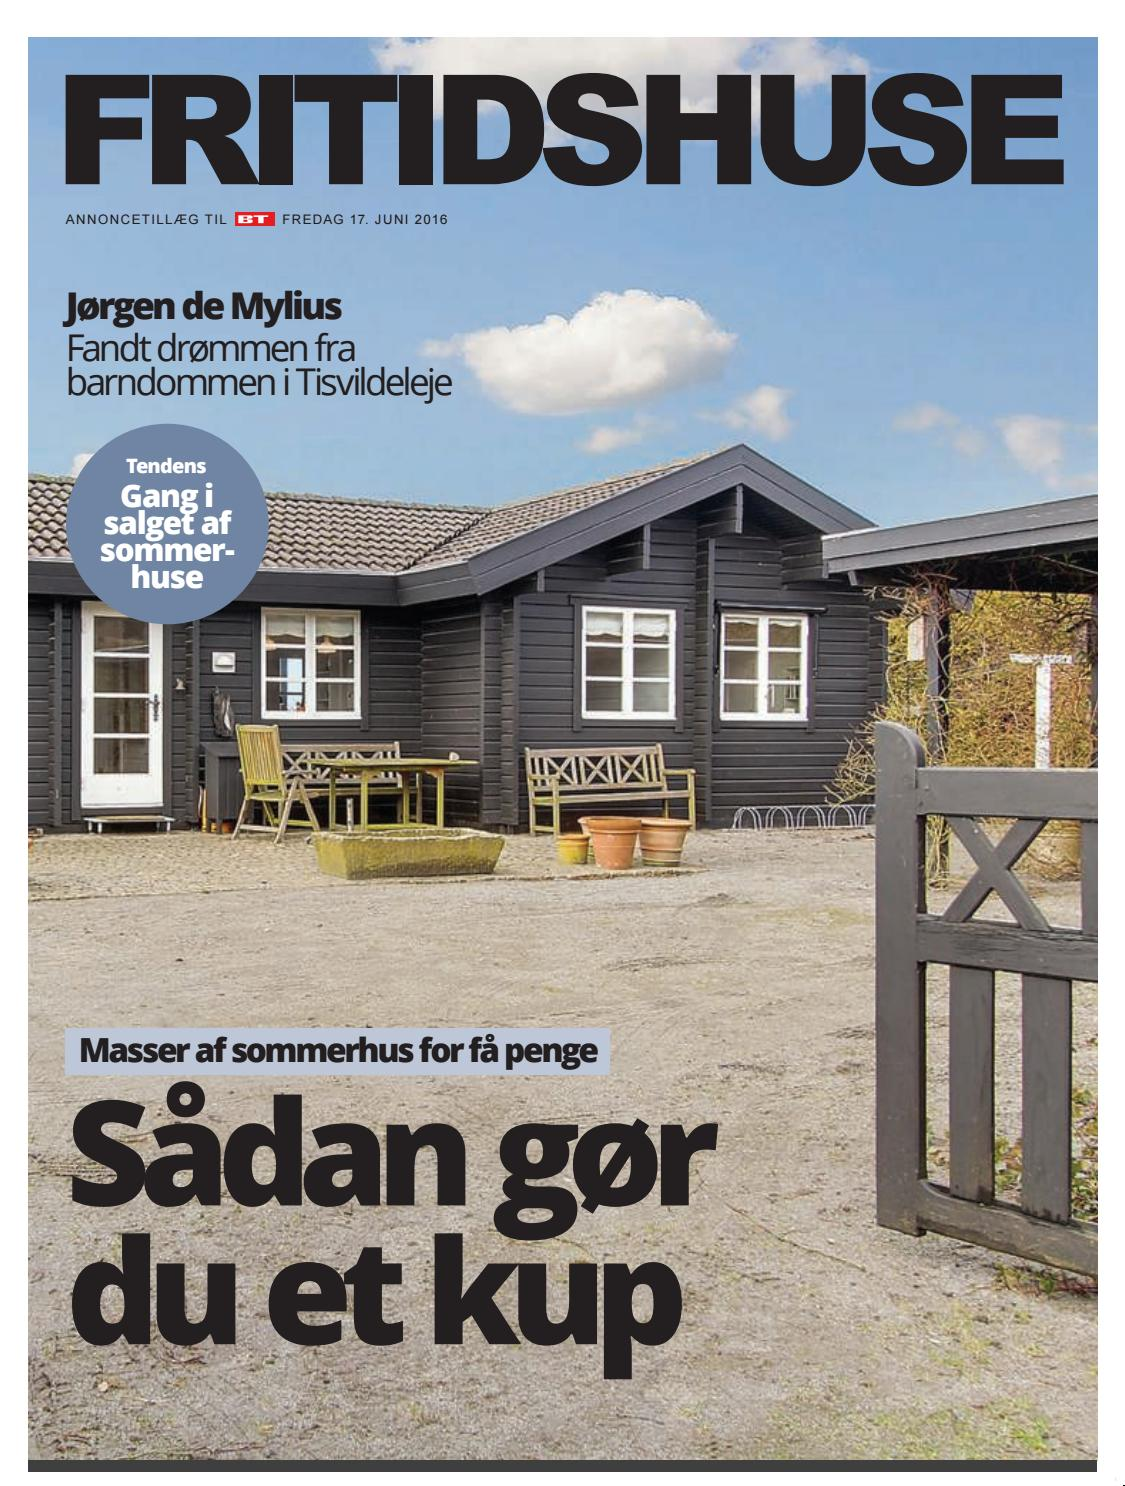 Christiansholms Tværvej 25, 2930 Klampenborg by Anna Reventlow - issuu